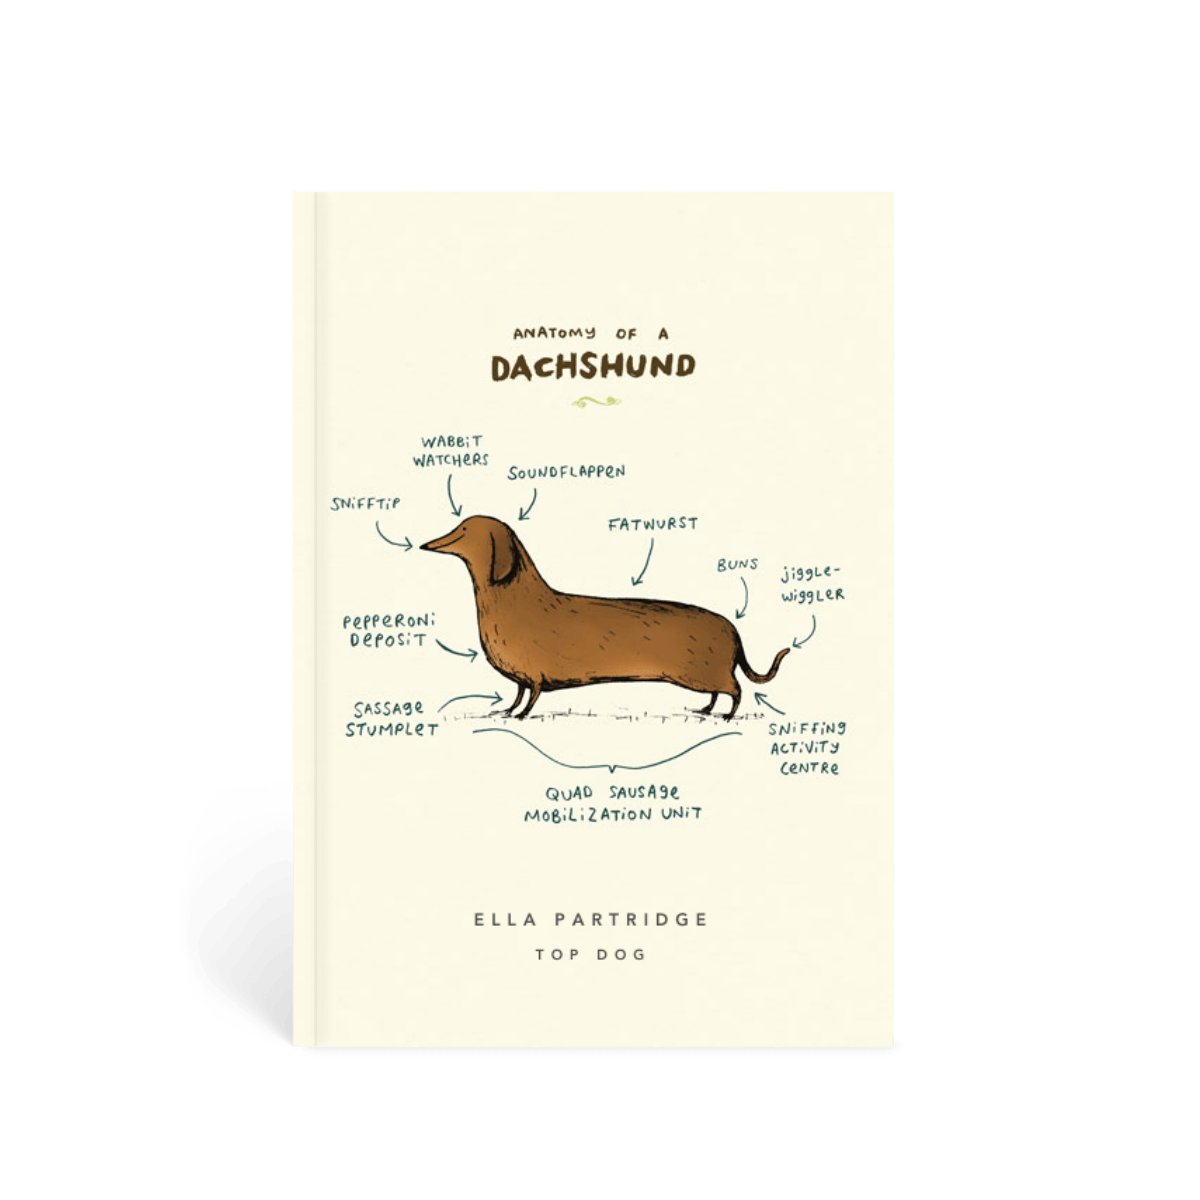 Https%3a%2f%2fwww.papier.com%2fproduct image%2f57203%2f25%2fanatomy of a dachshund 13740 front 1570305160.png?ixlib=rb 1.1